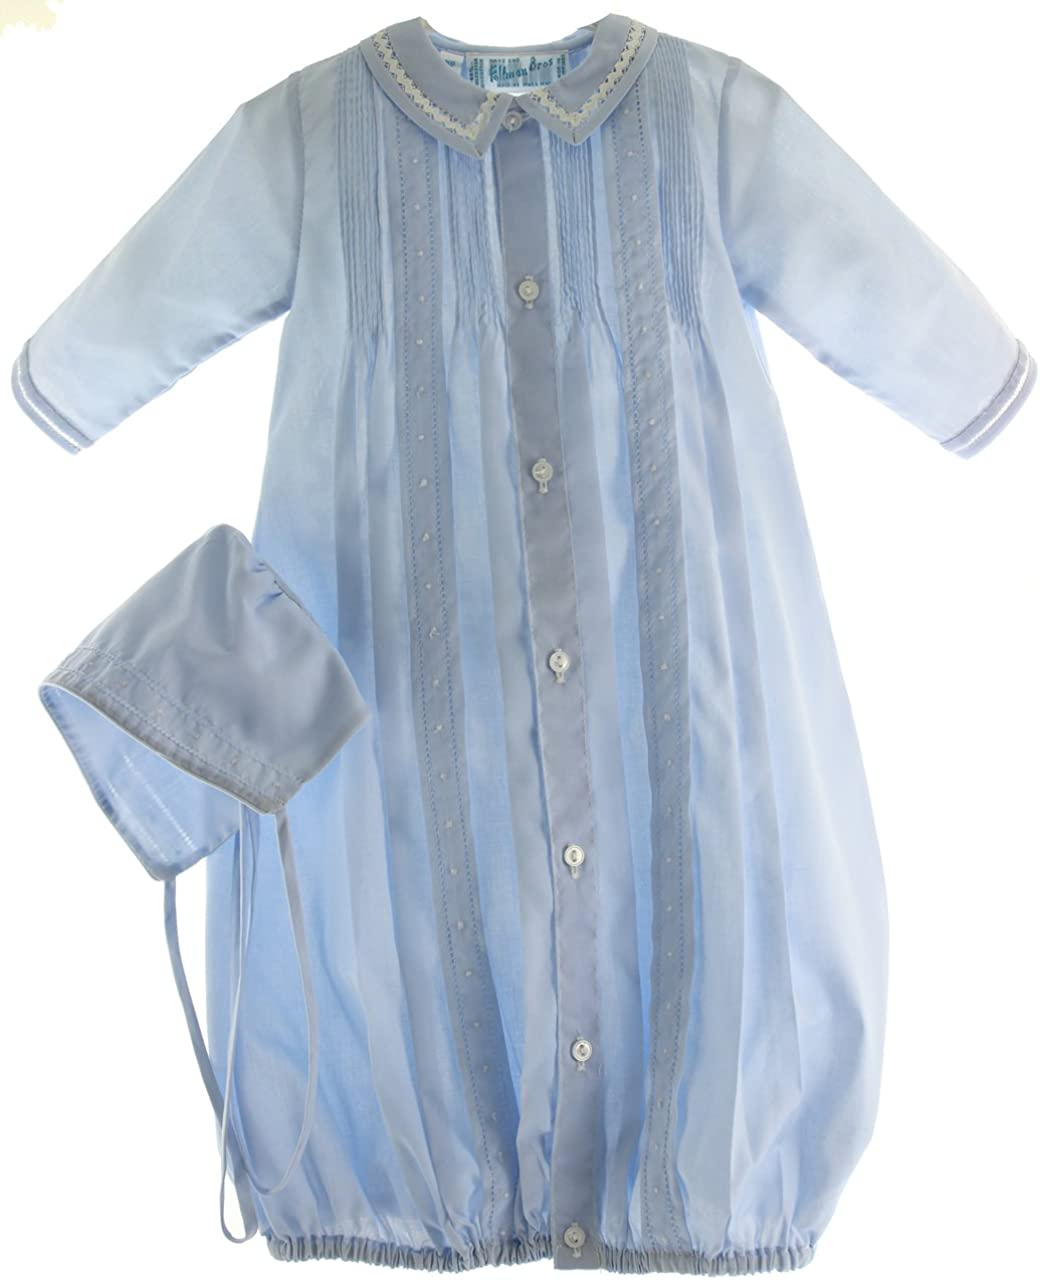 Feltman Brothers Boys Blue Take Home Outfit Gown Hat Layette Set Pintucks